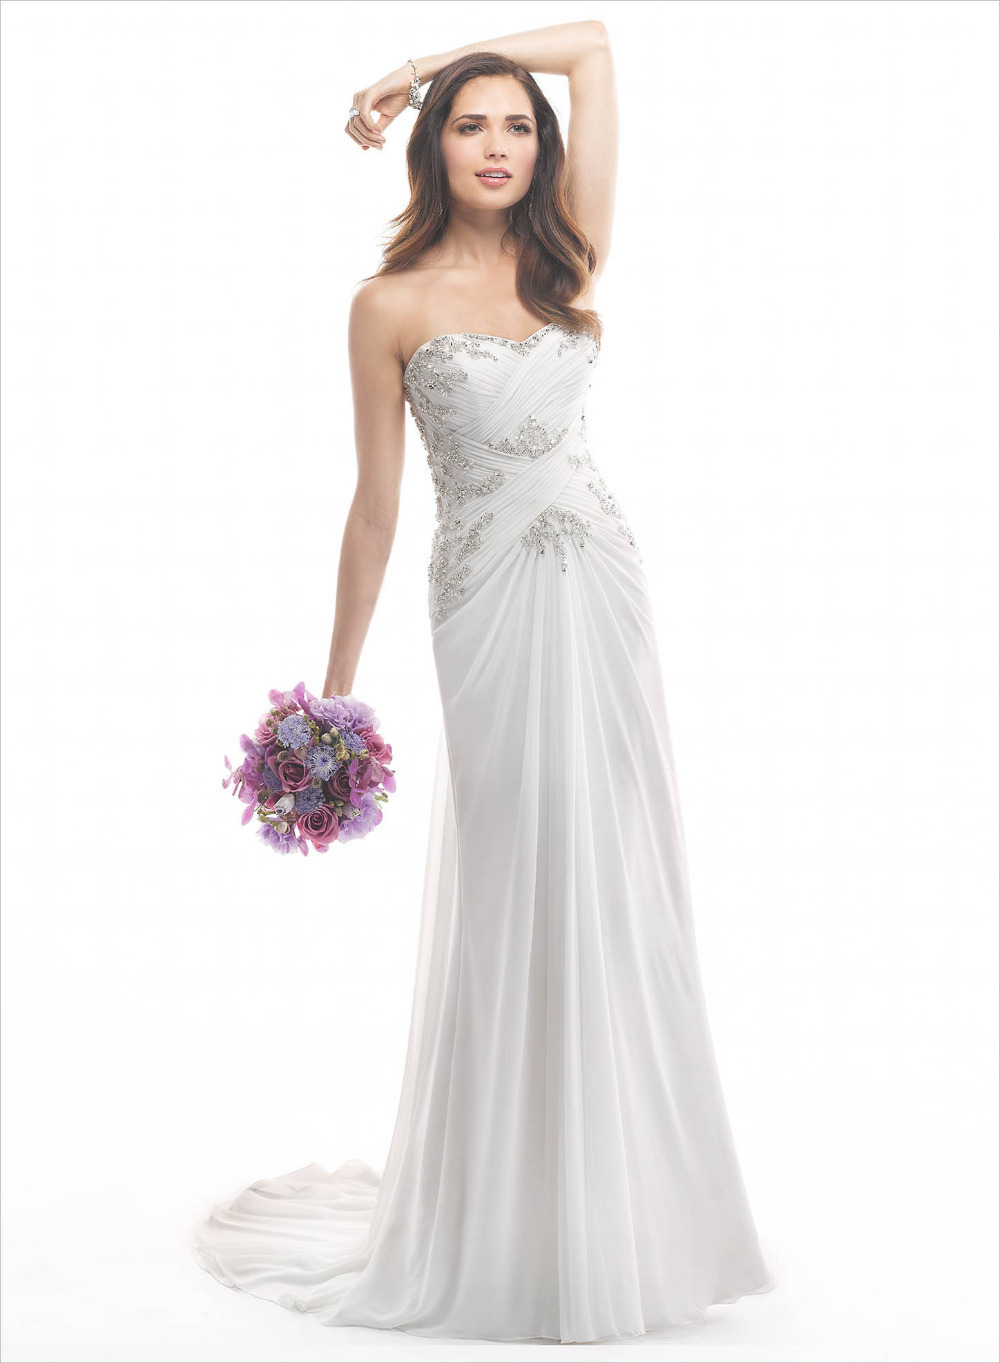 2015 hot selling charming white wedding dress bride for Selling your wedding dress